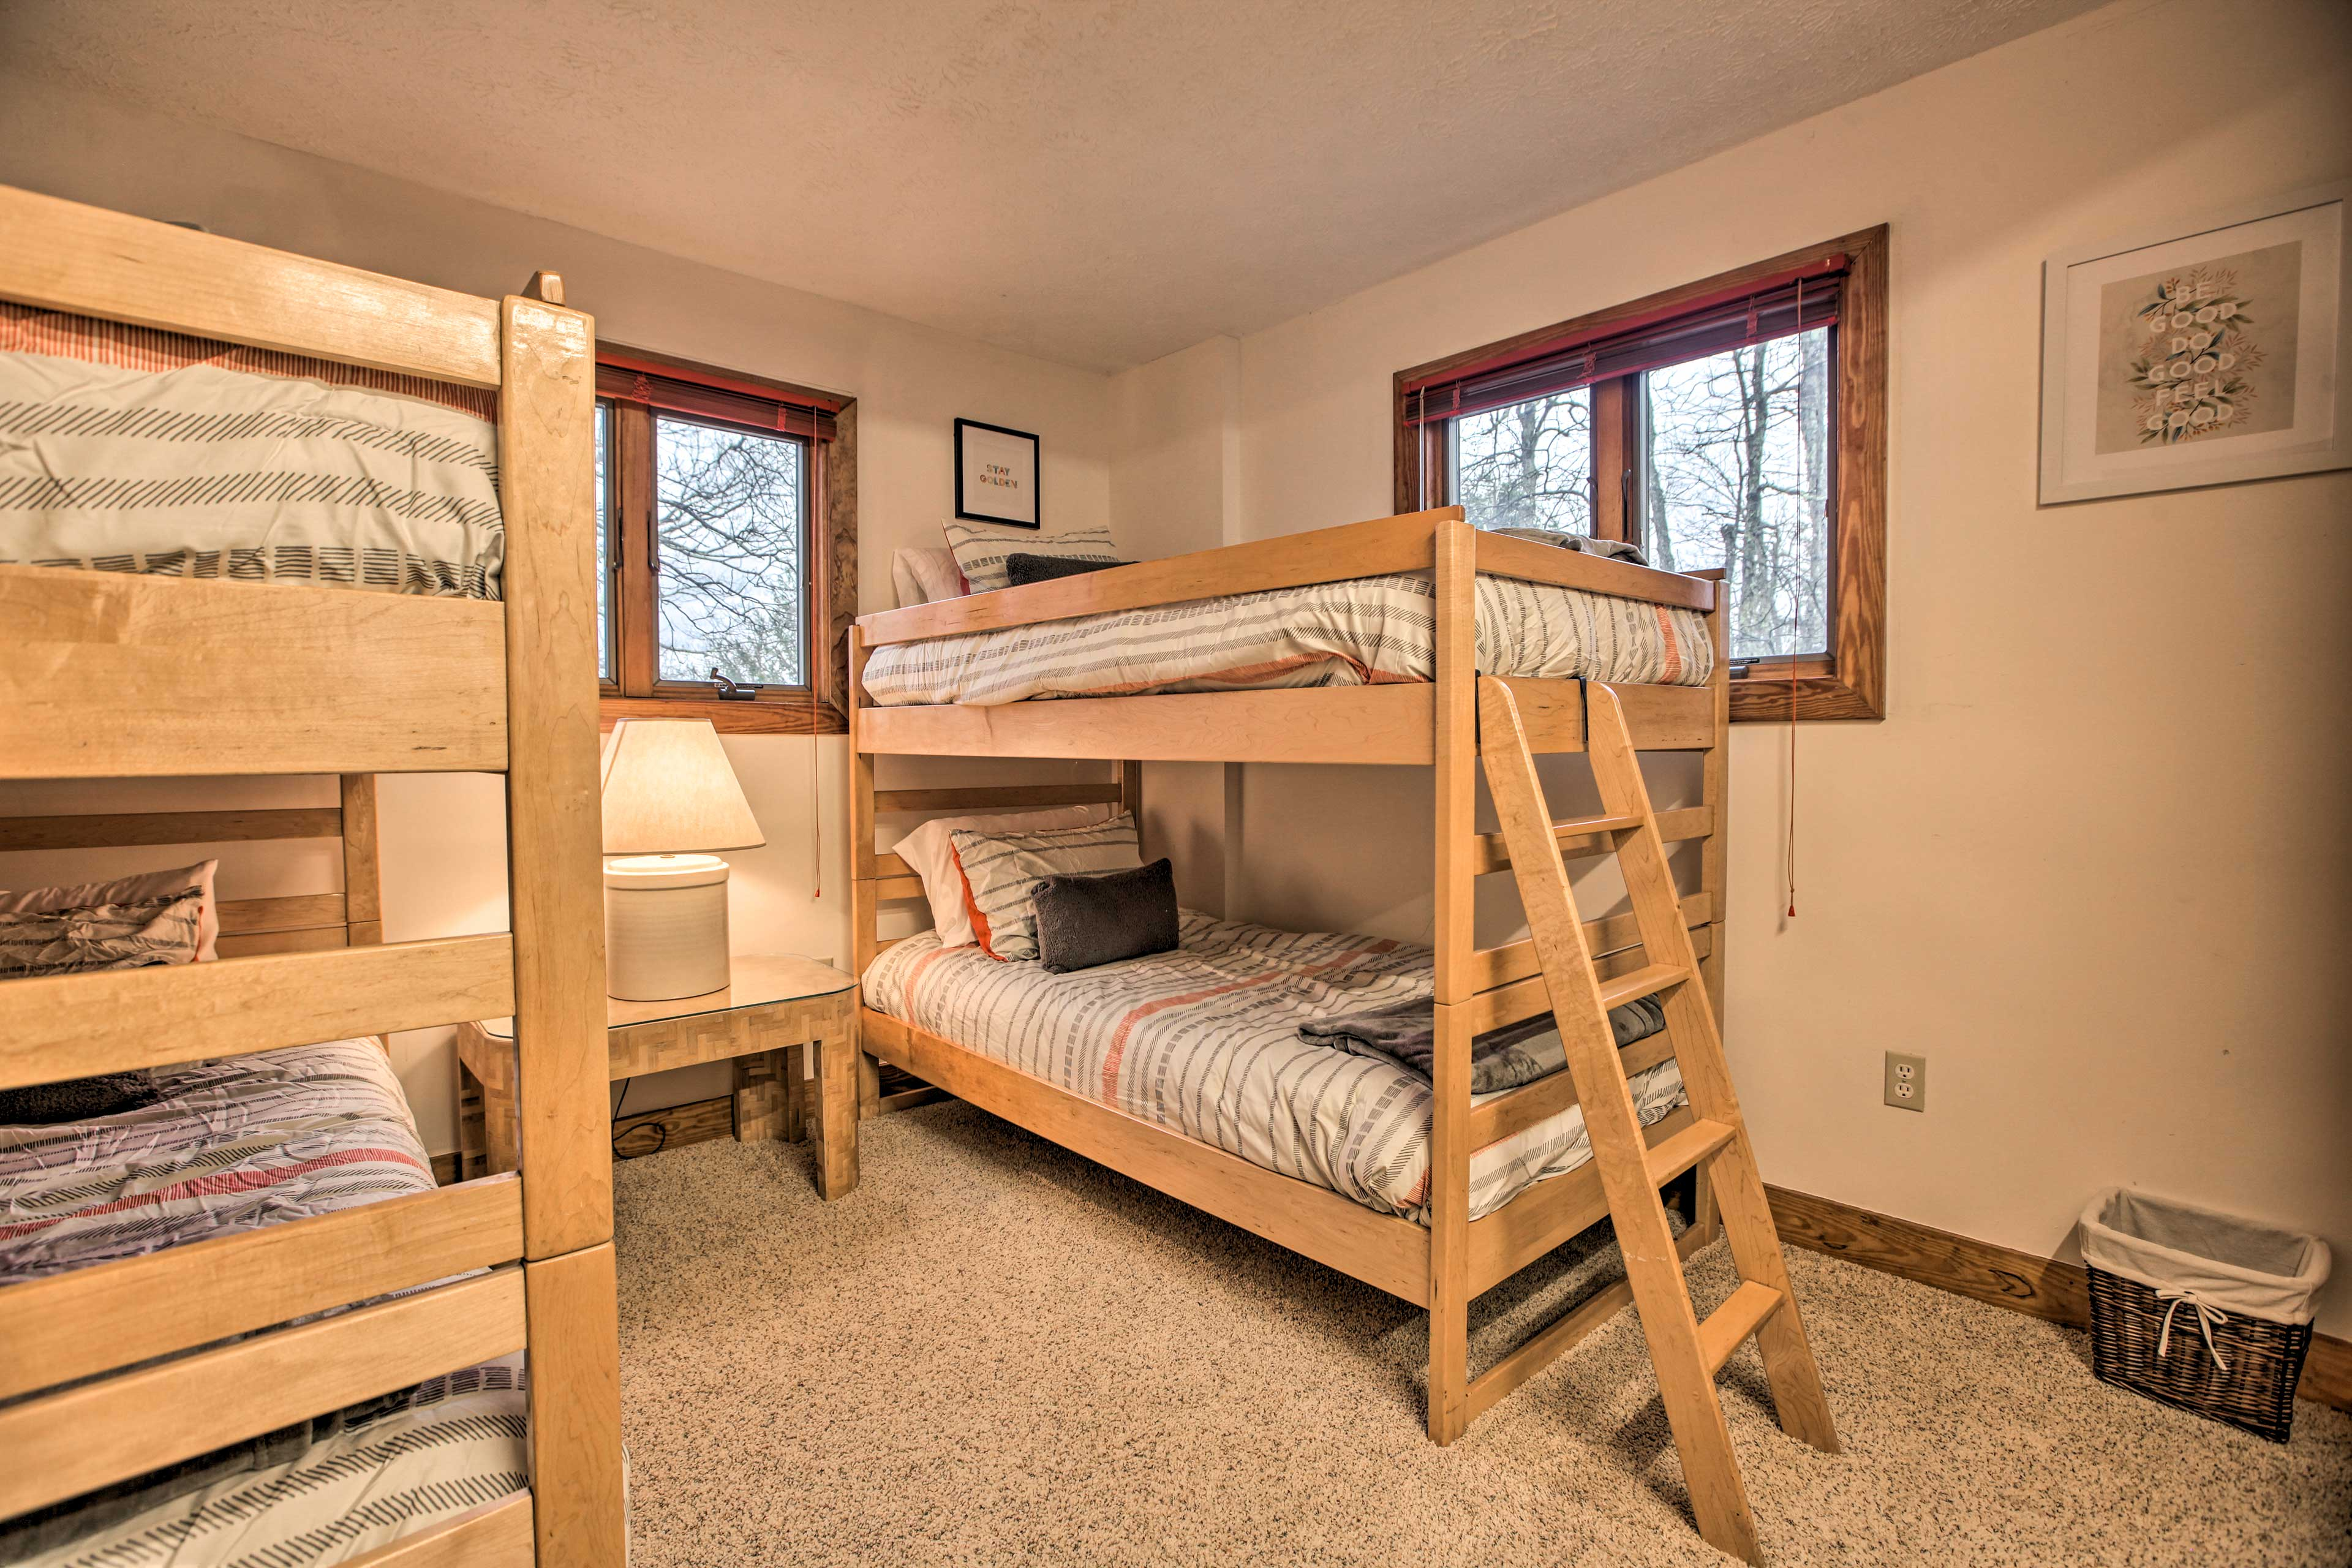 Drift off to sleep in one of the fourth bedroom's bunk beds.